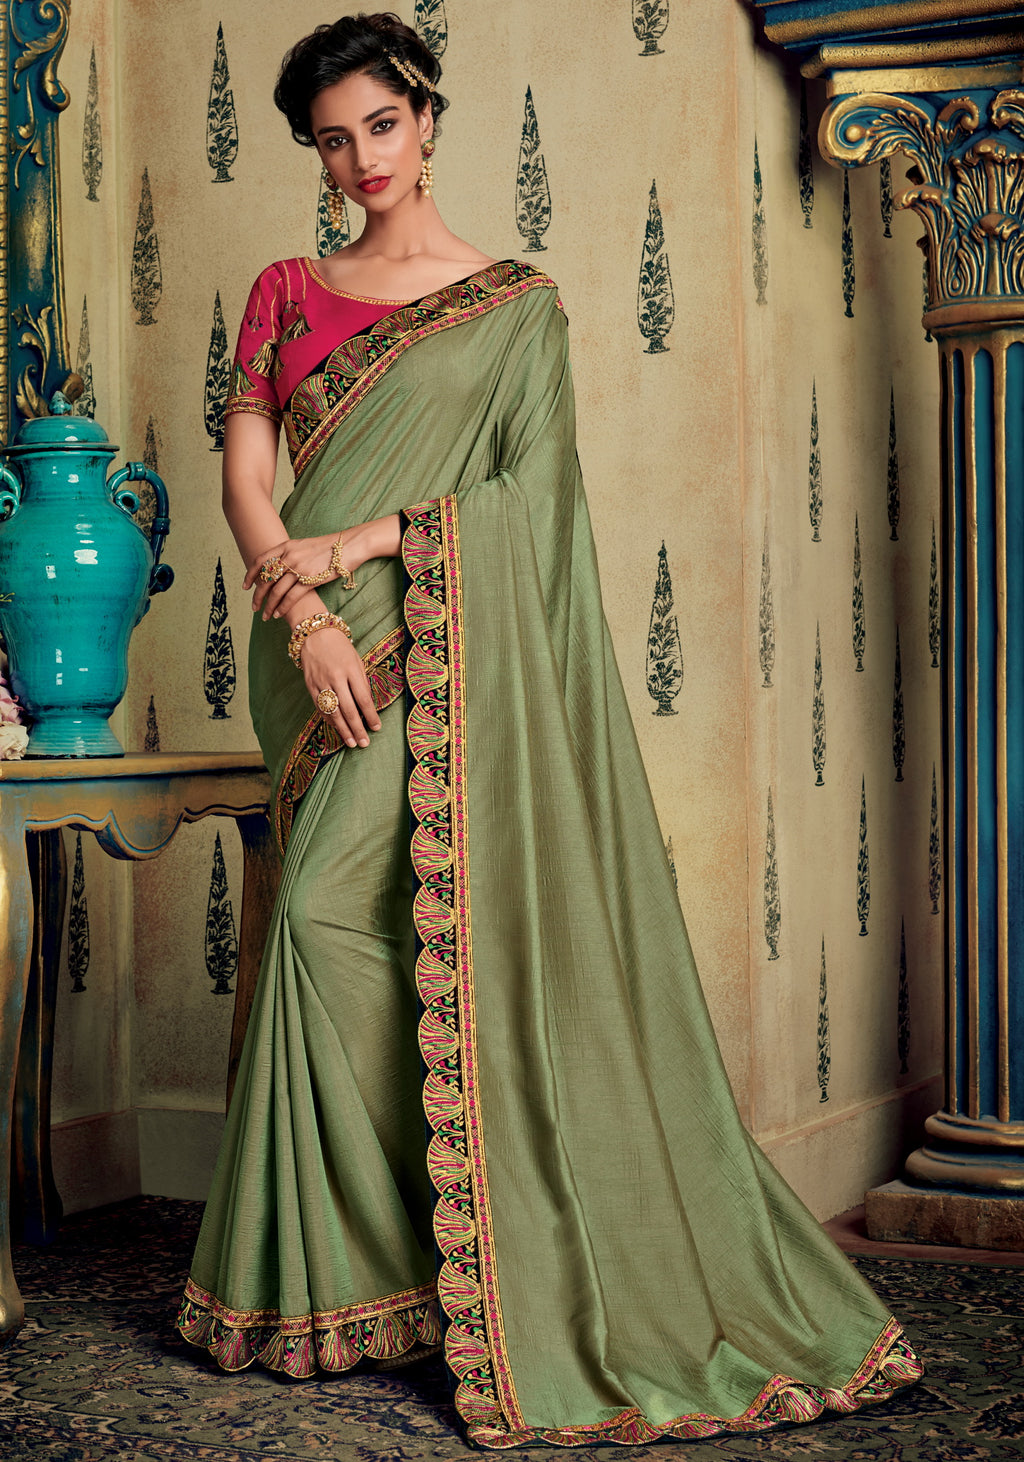 Moss Green Color Wrinkle Crepe Pretty Occasion Wear Sarees NYF-6401